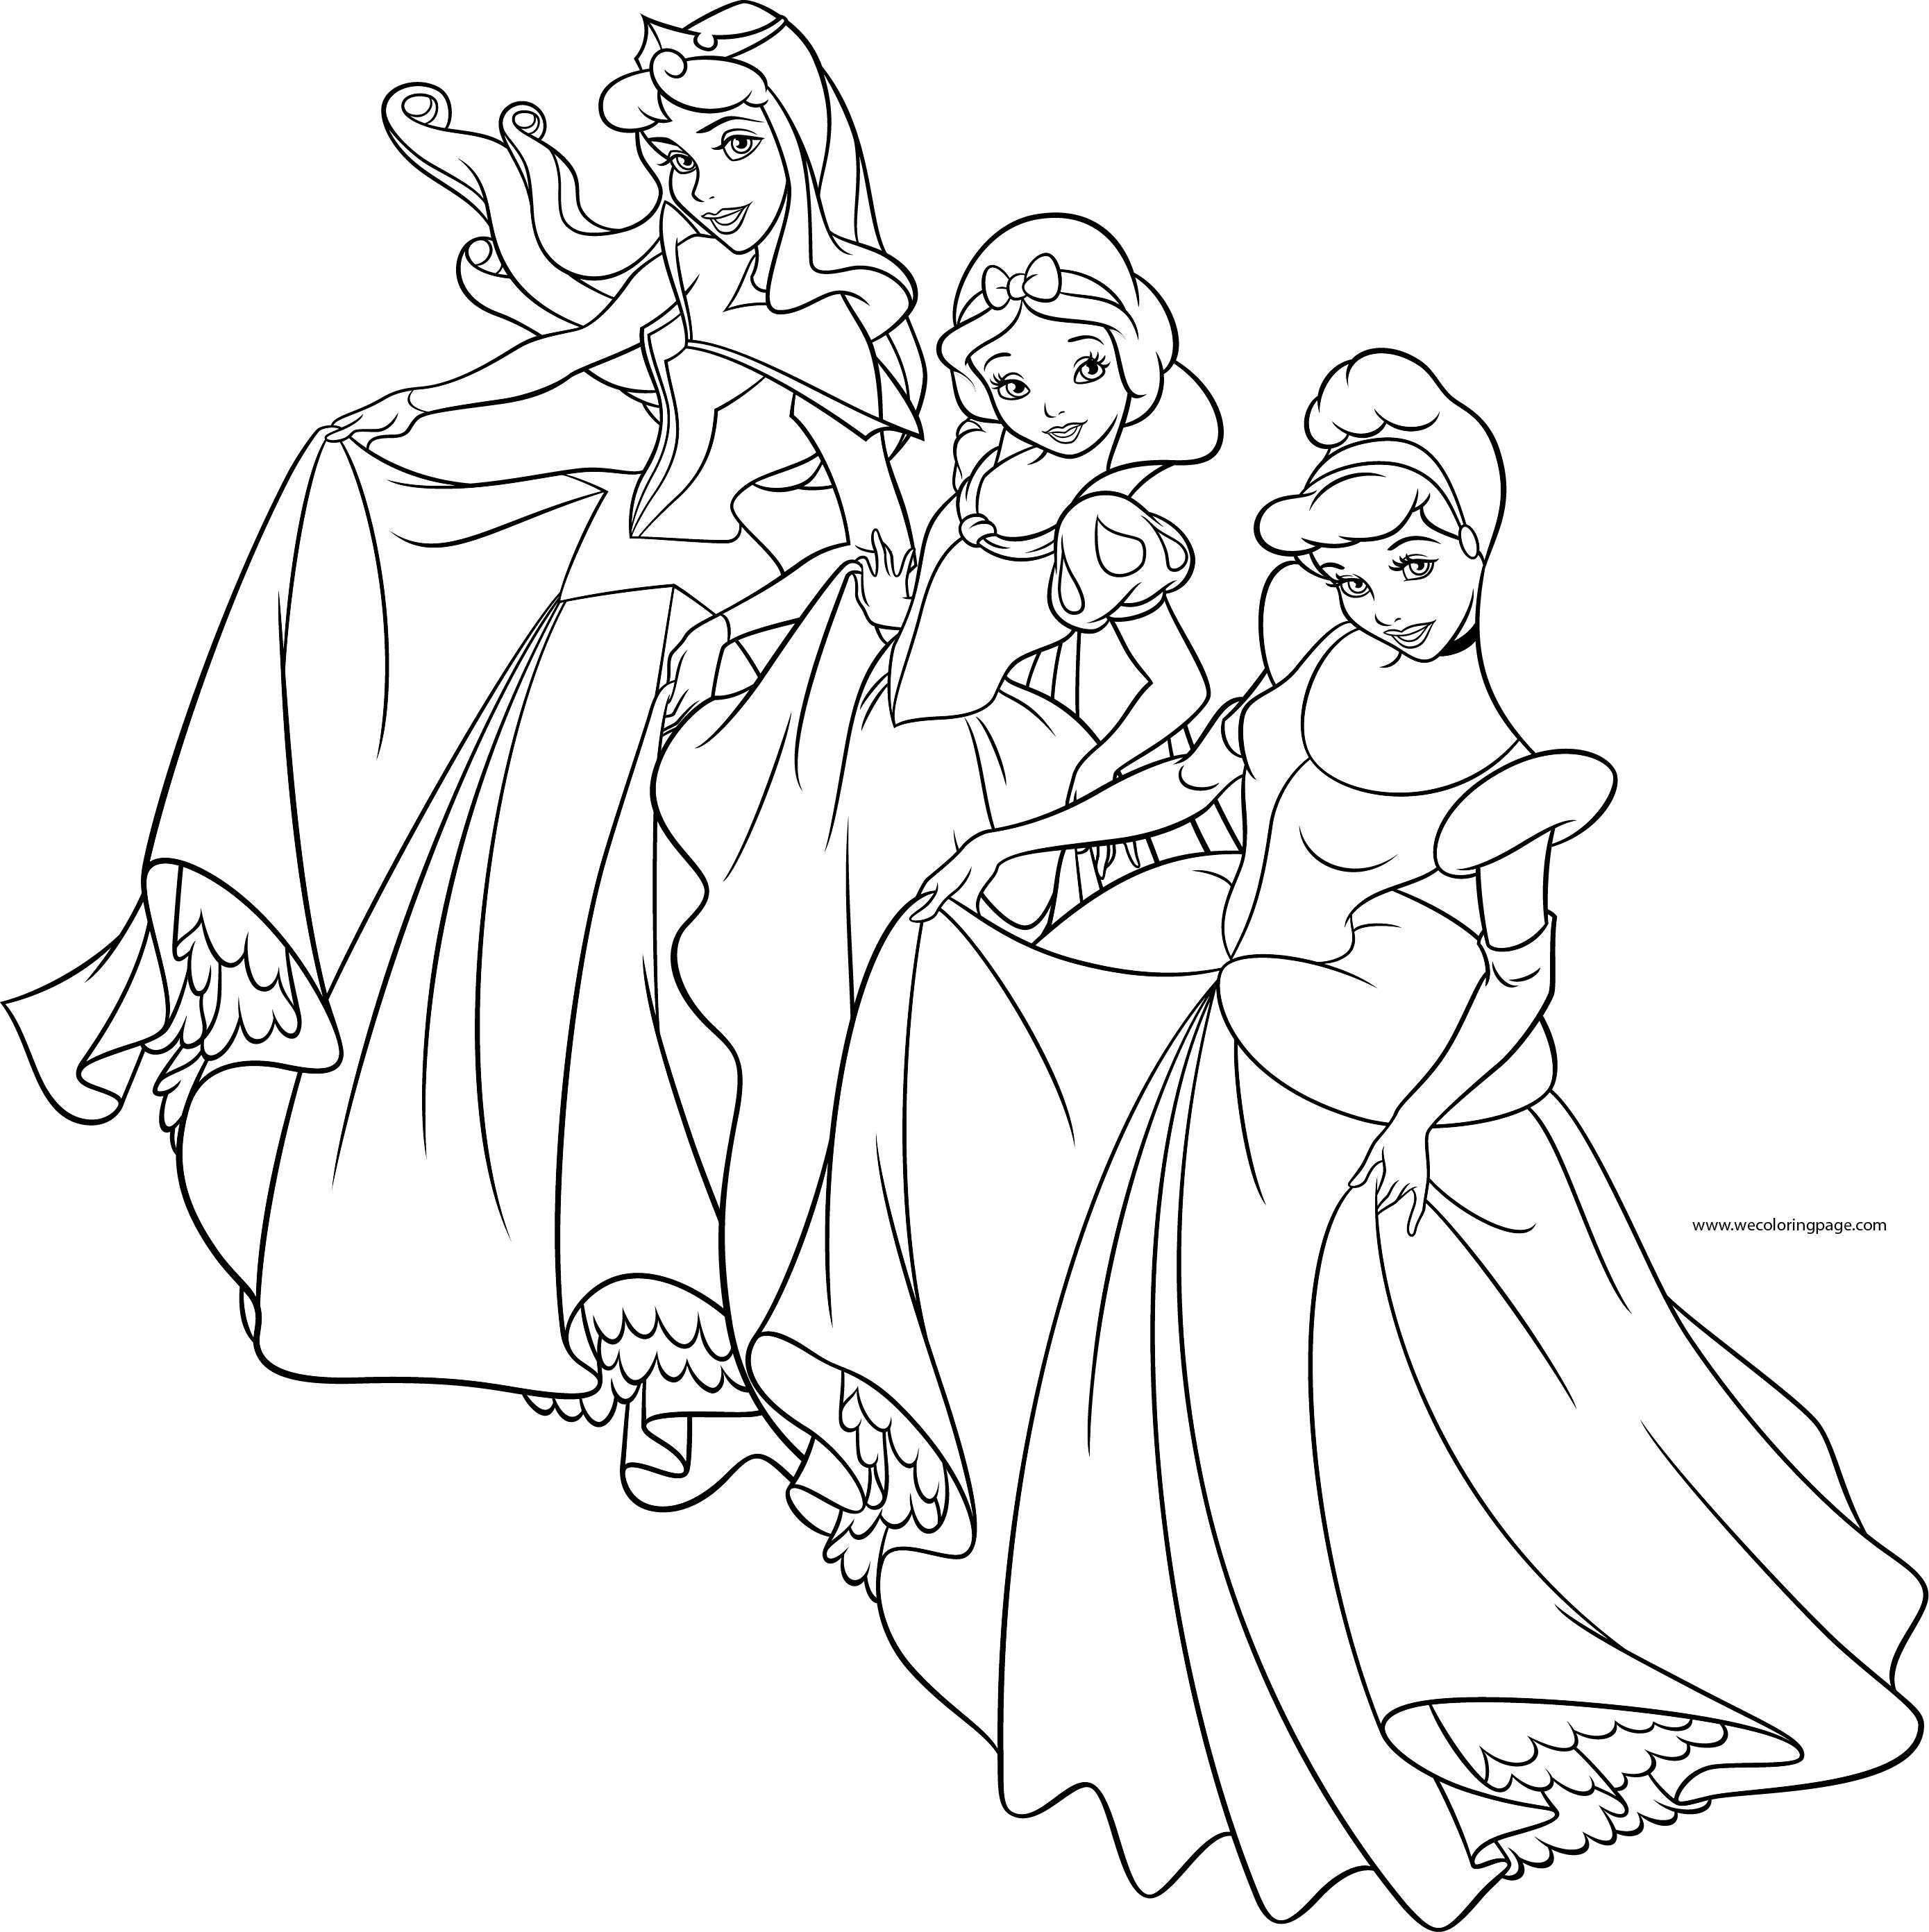 Three Disney Princess Coloring Page